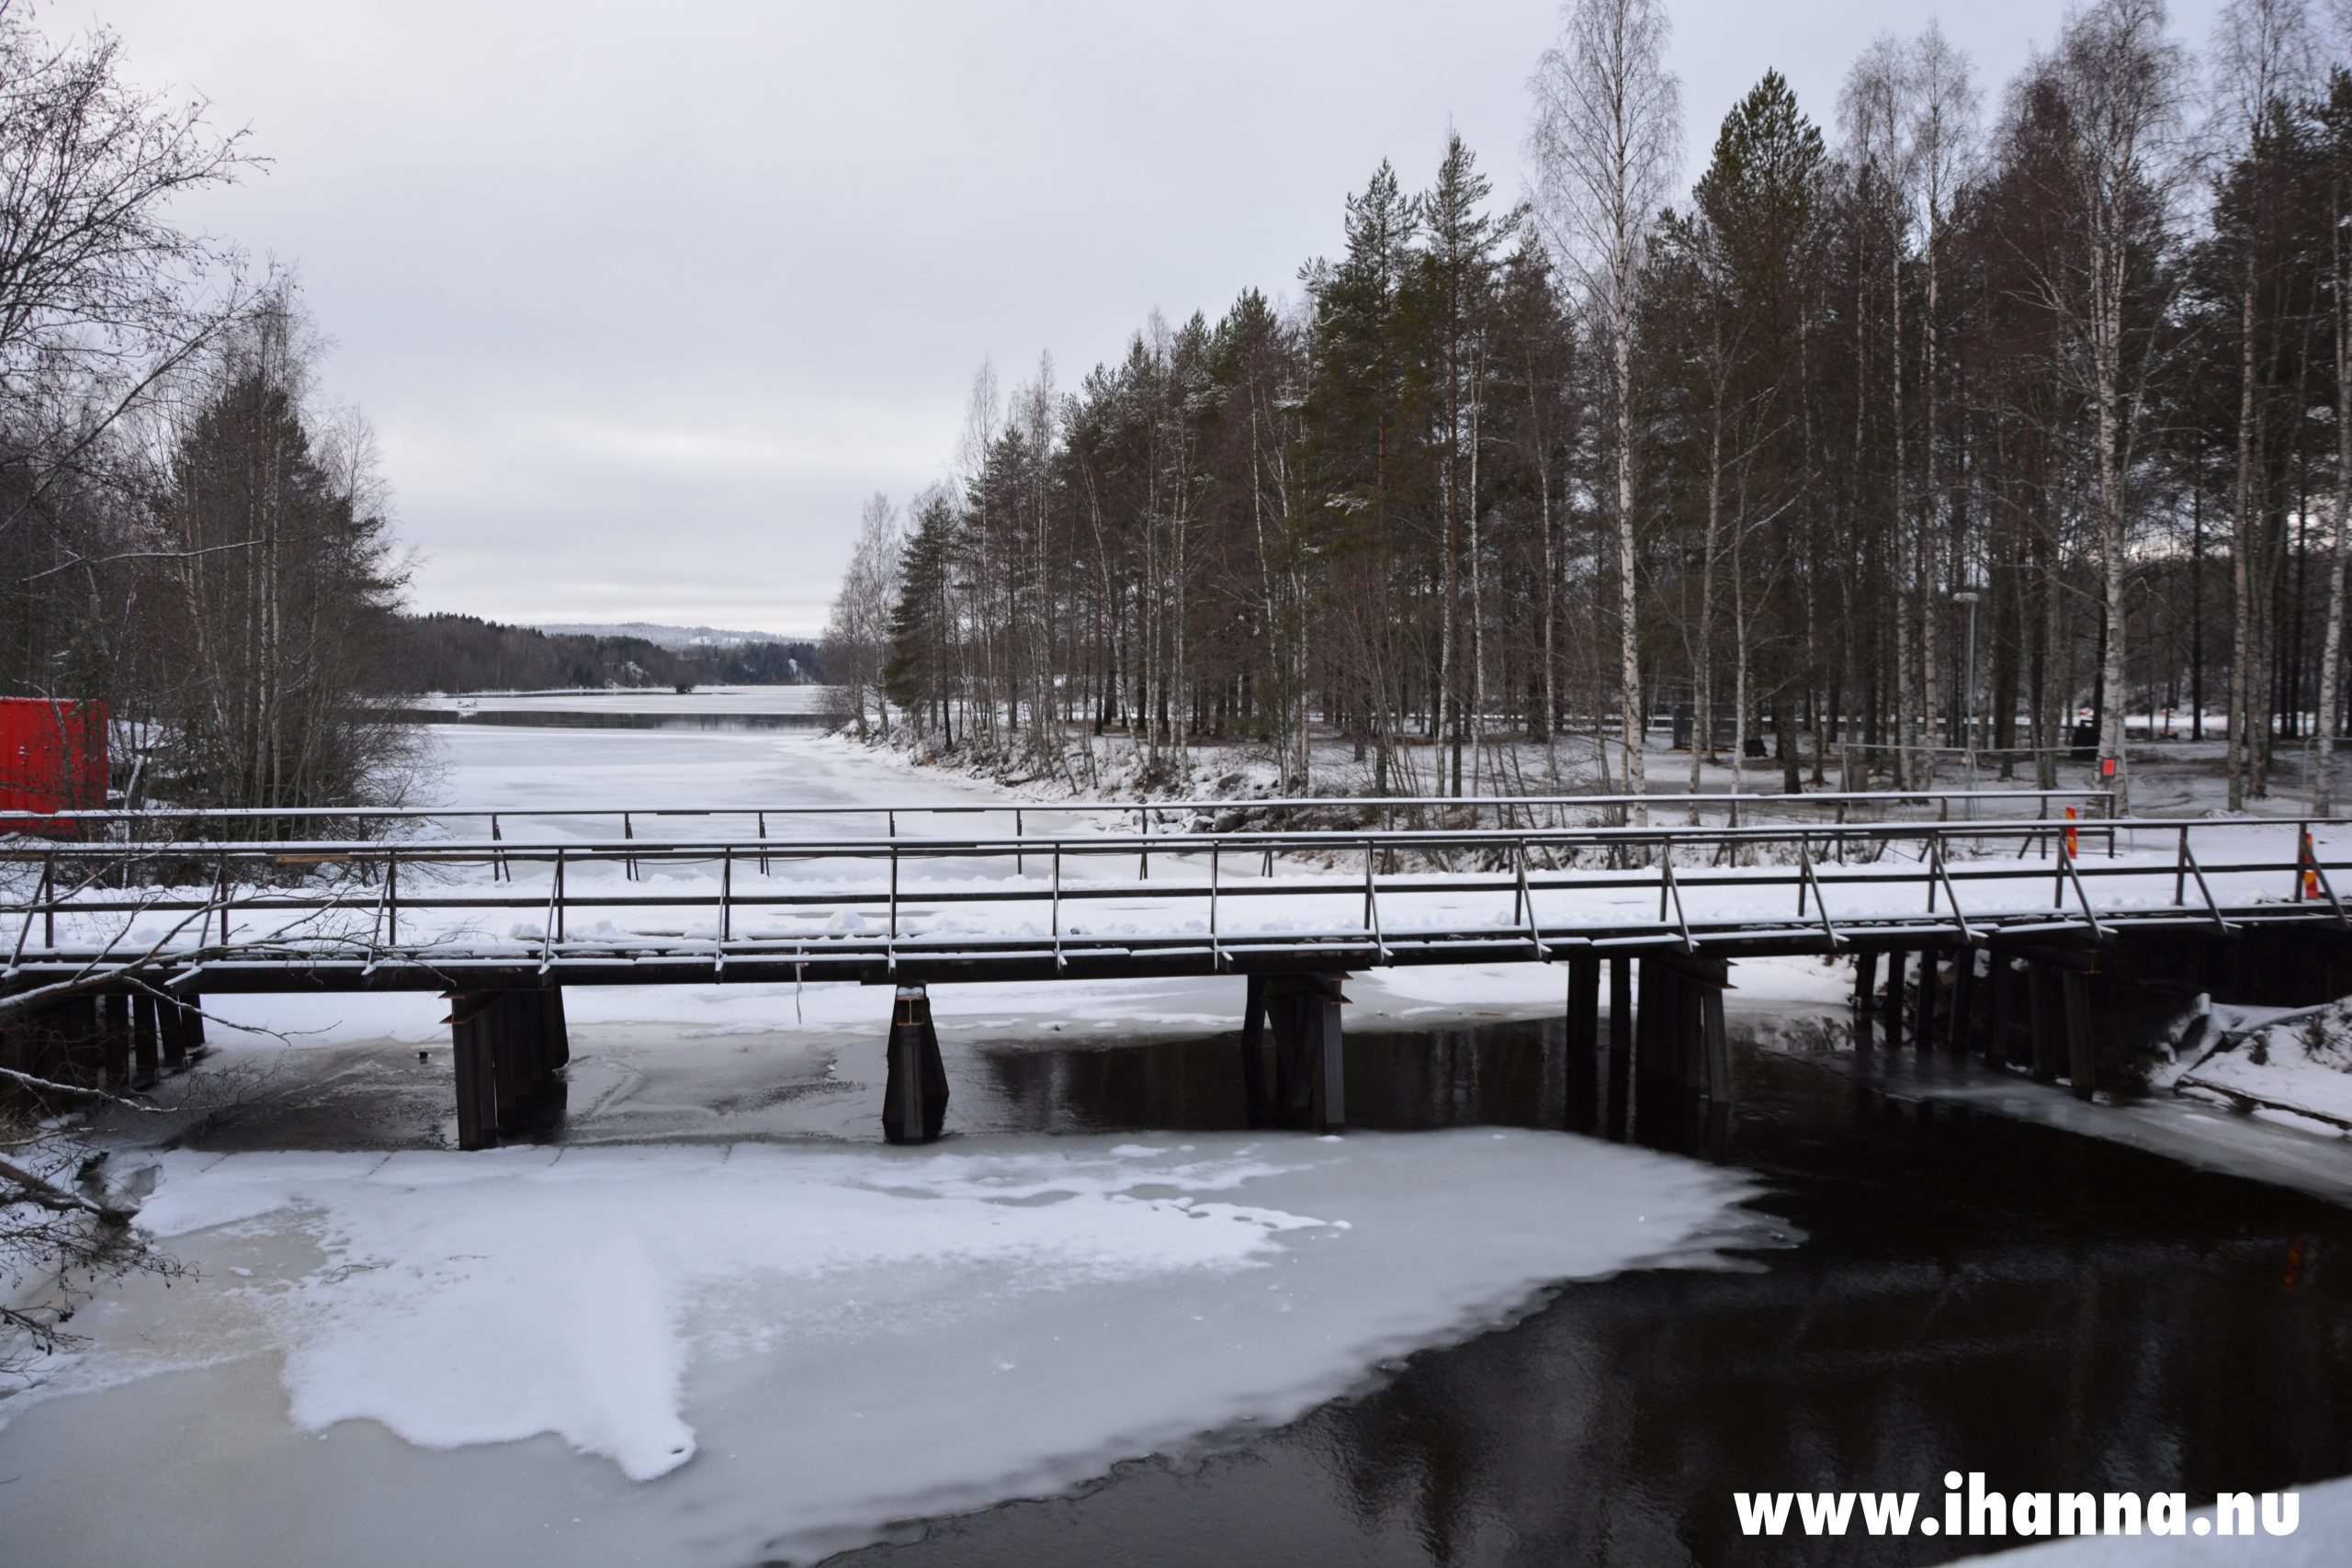 A winter walk in Sweden 2019 Photo Copyright Hanna Andersson